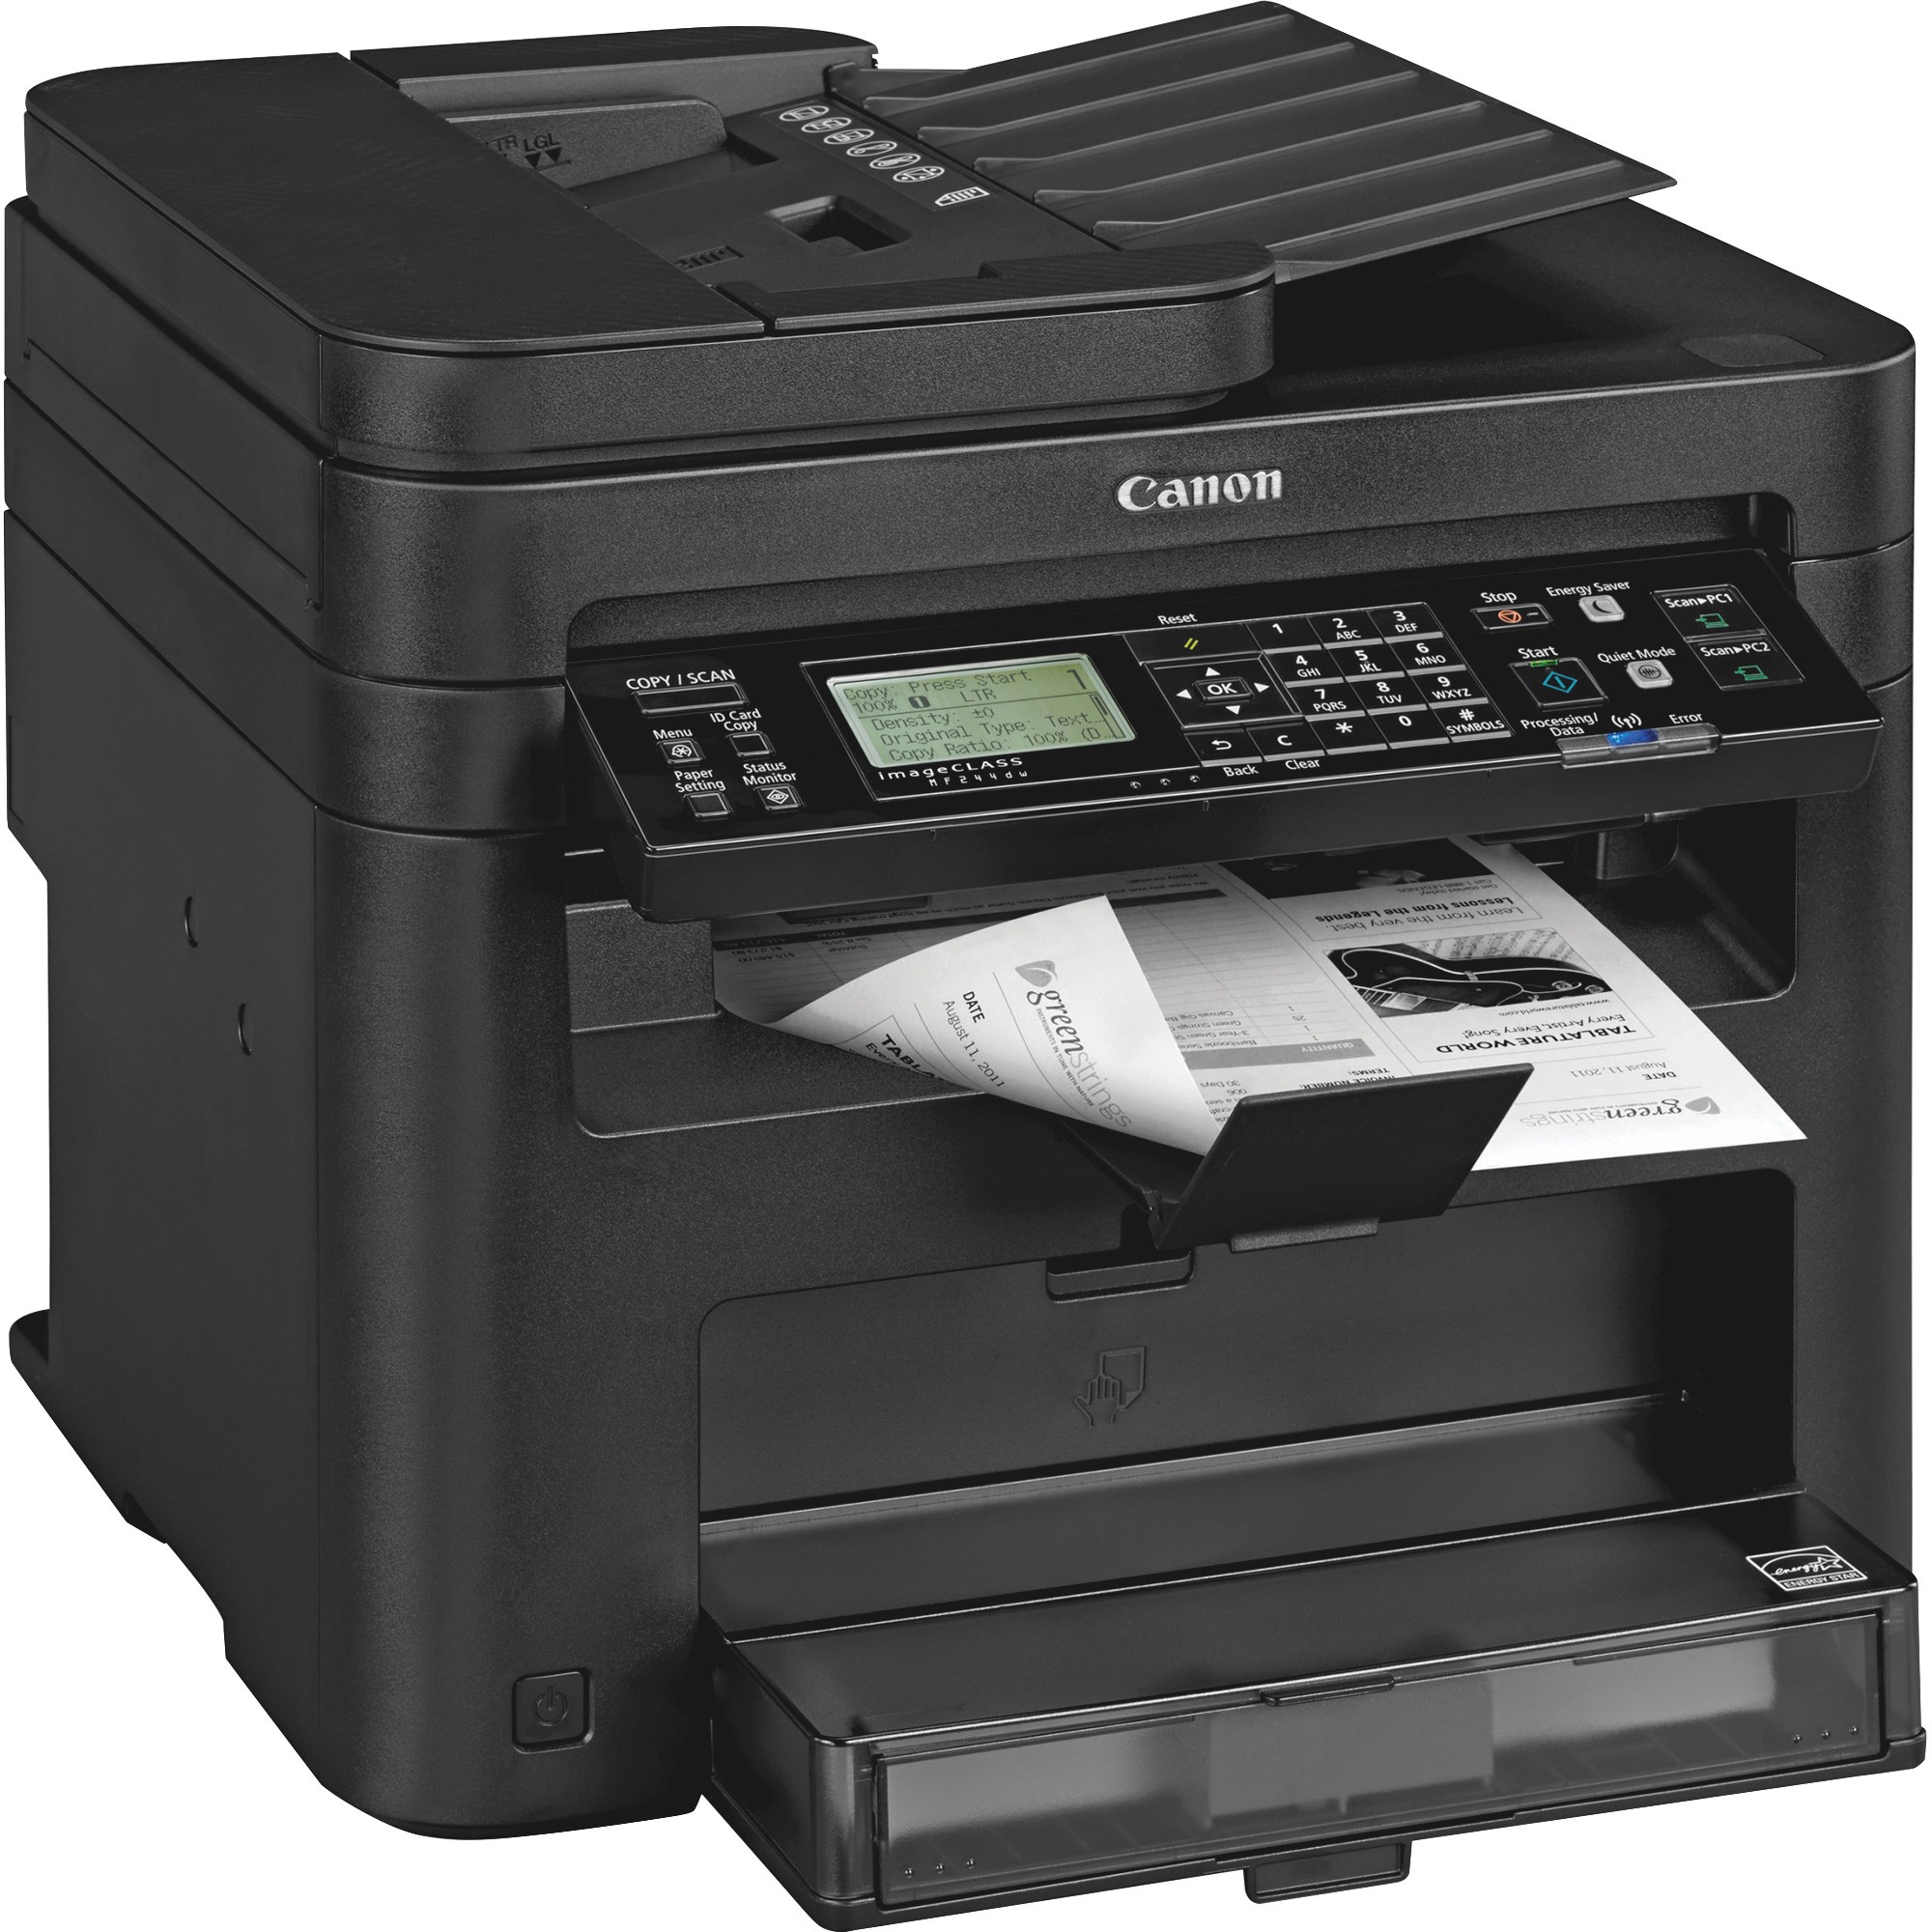 Canon imageCLASS MF244dw 3-in-1 Laser Printer